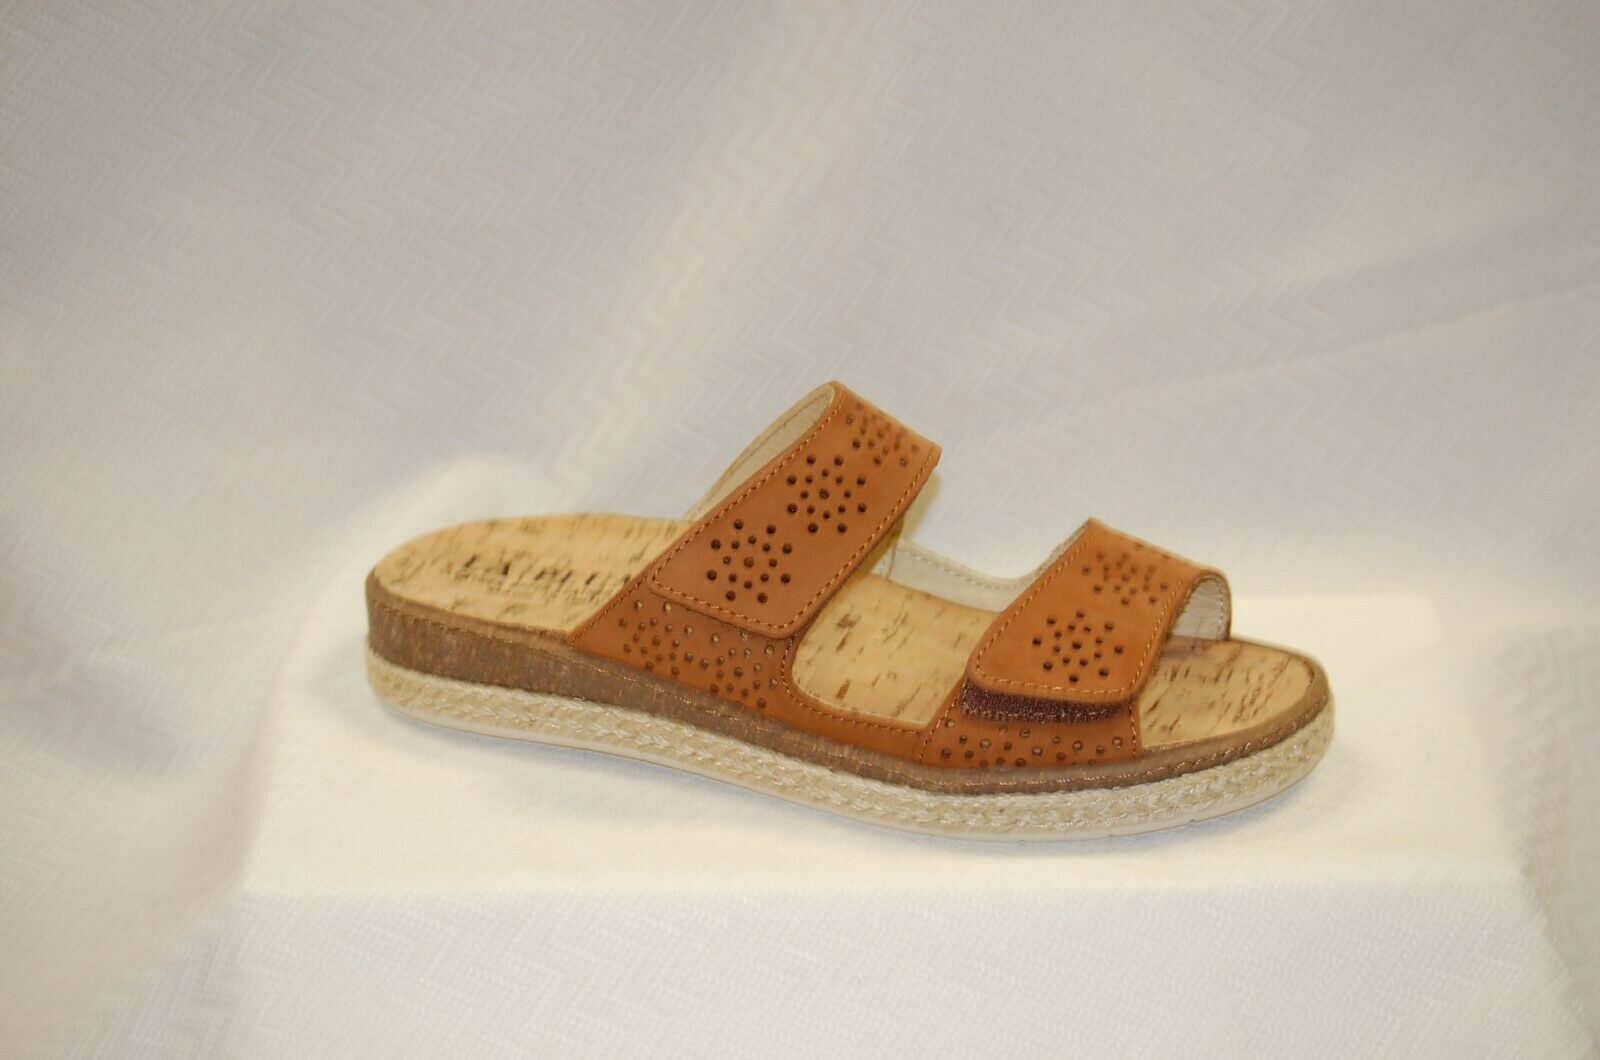 La Plume Meadow Slide Slide Slide Sandal Tan Nubuk leather + removable insole Dimensione 40 3a3894